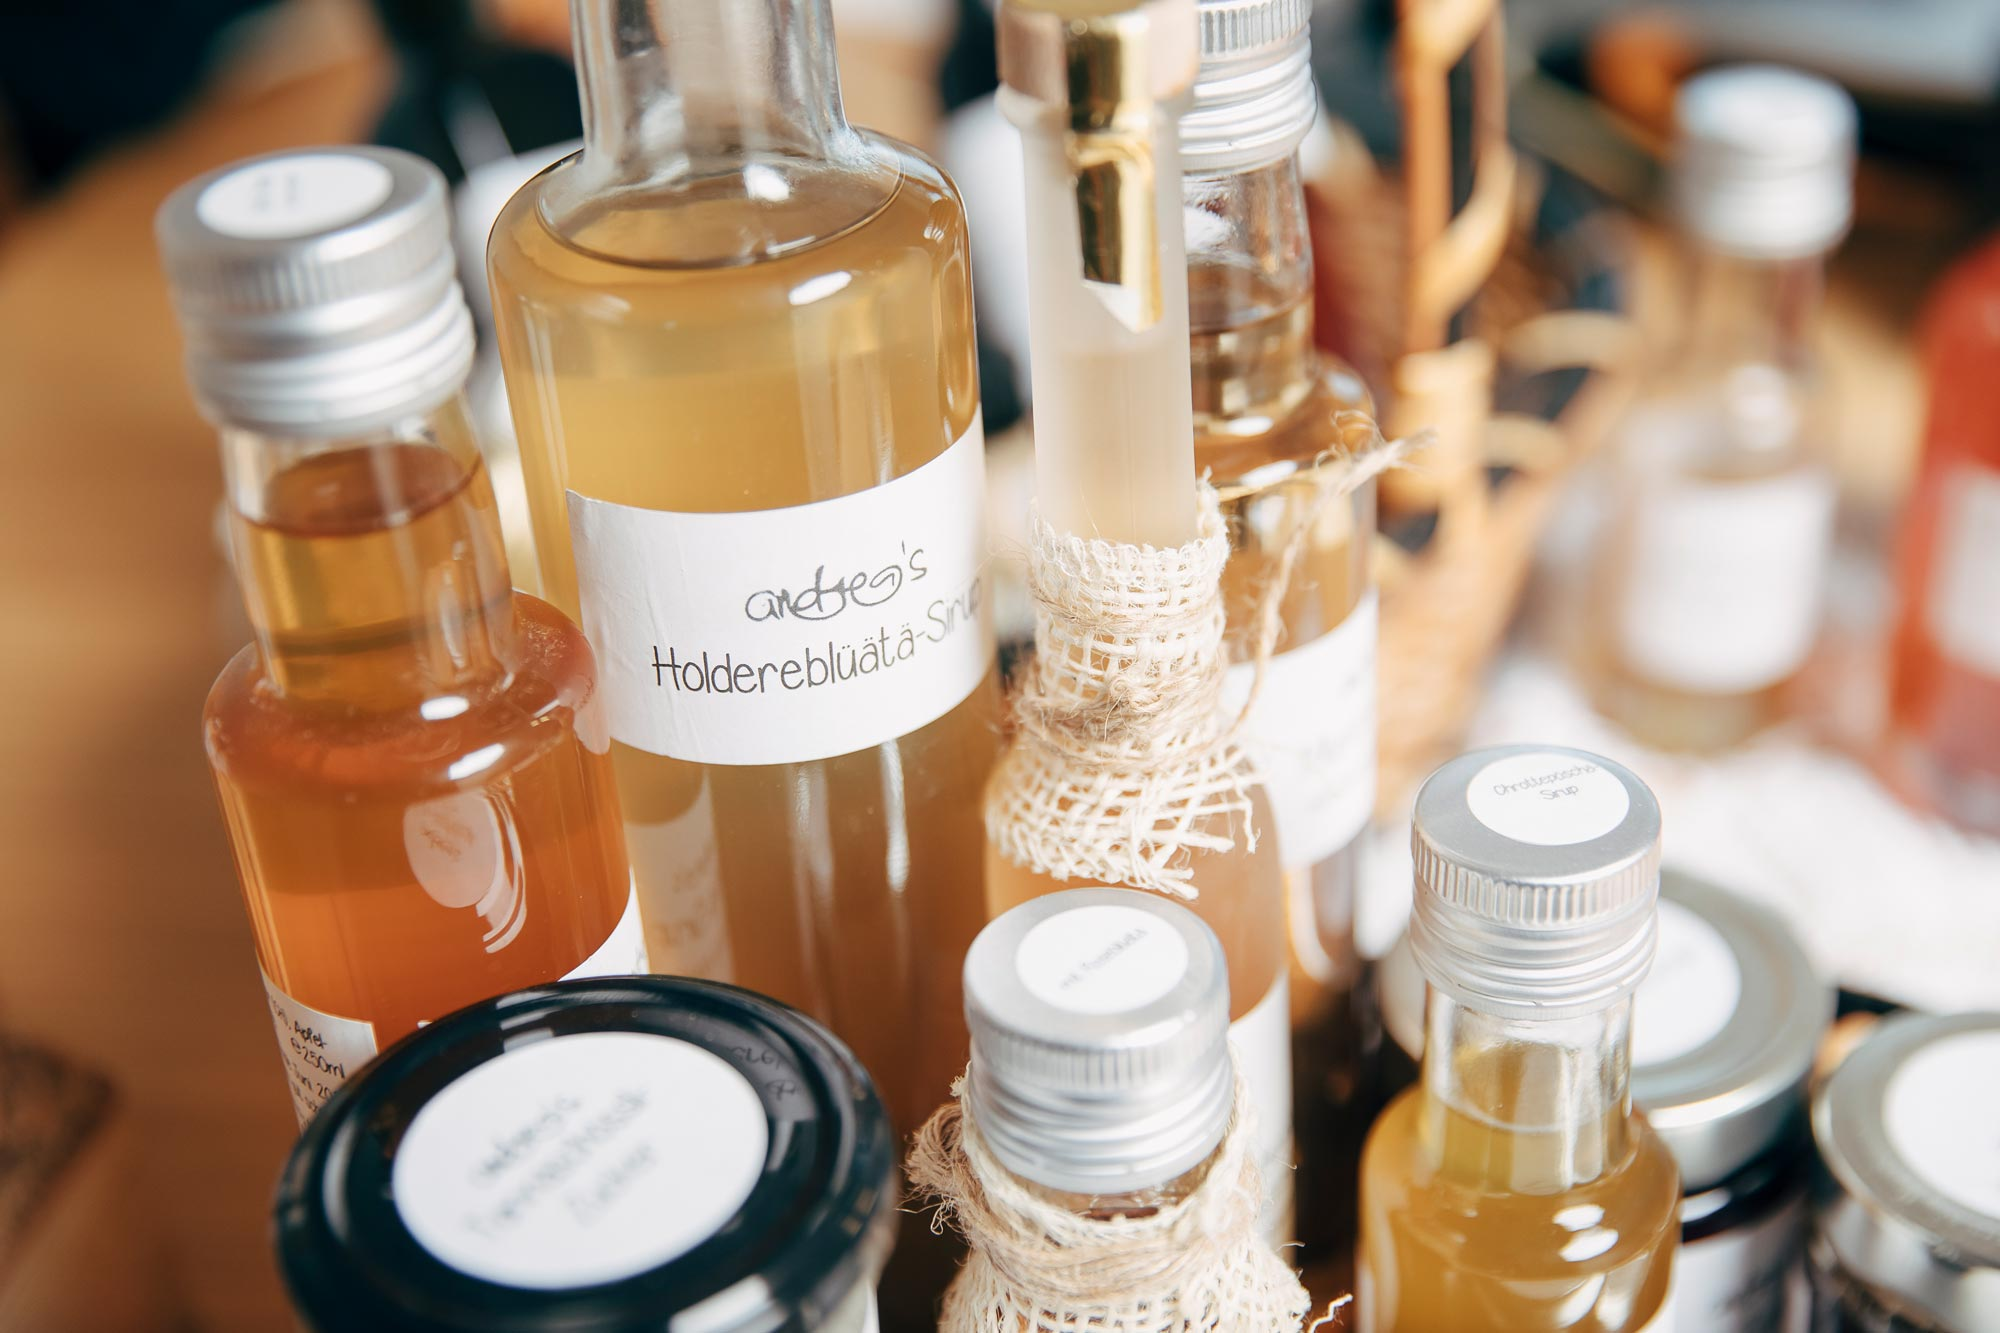 Homemade products from Andrea's manufactory